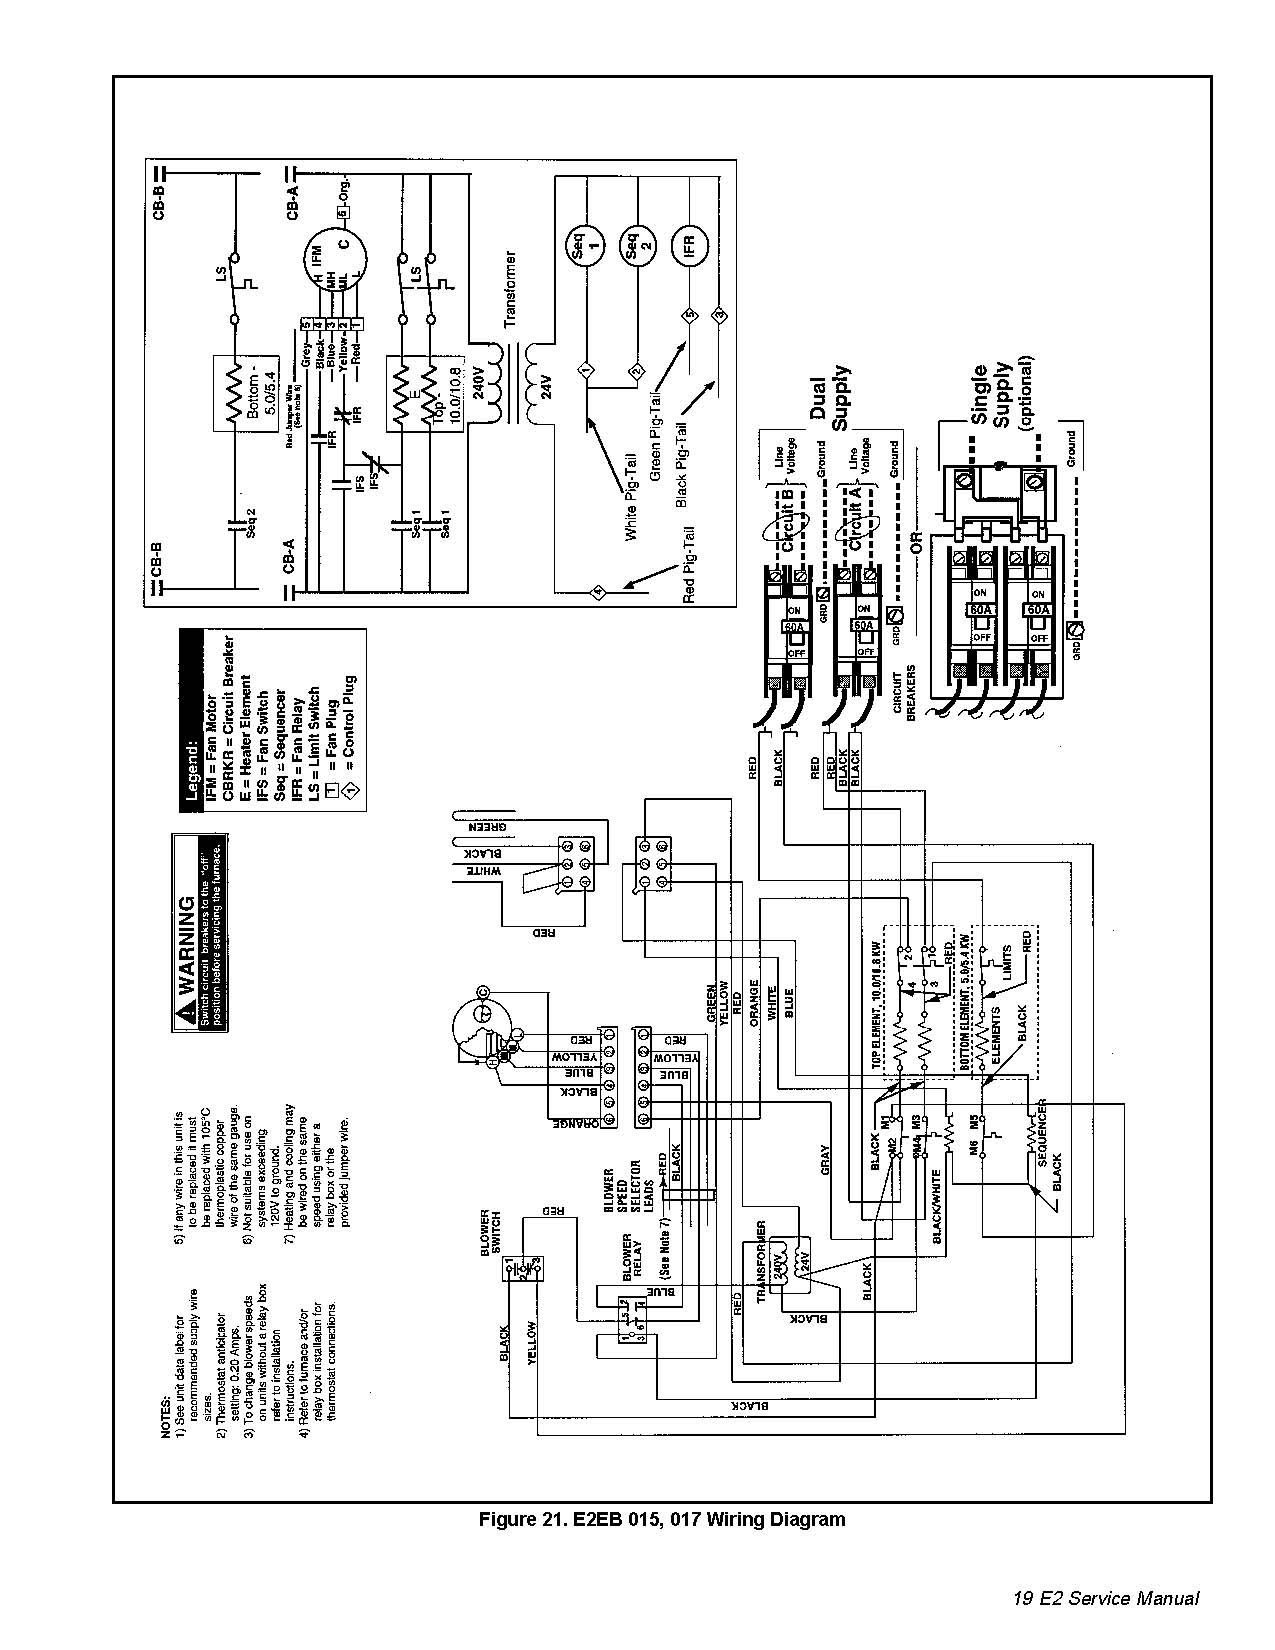 New Wiring Diagram For Intertherm Electric Furnace Diagram Diagramsample Diagramtemplate Wiringdiagram Diagram Electric Furnace Electrical Diagram Furnace